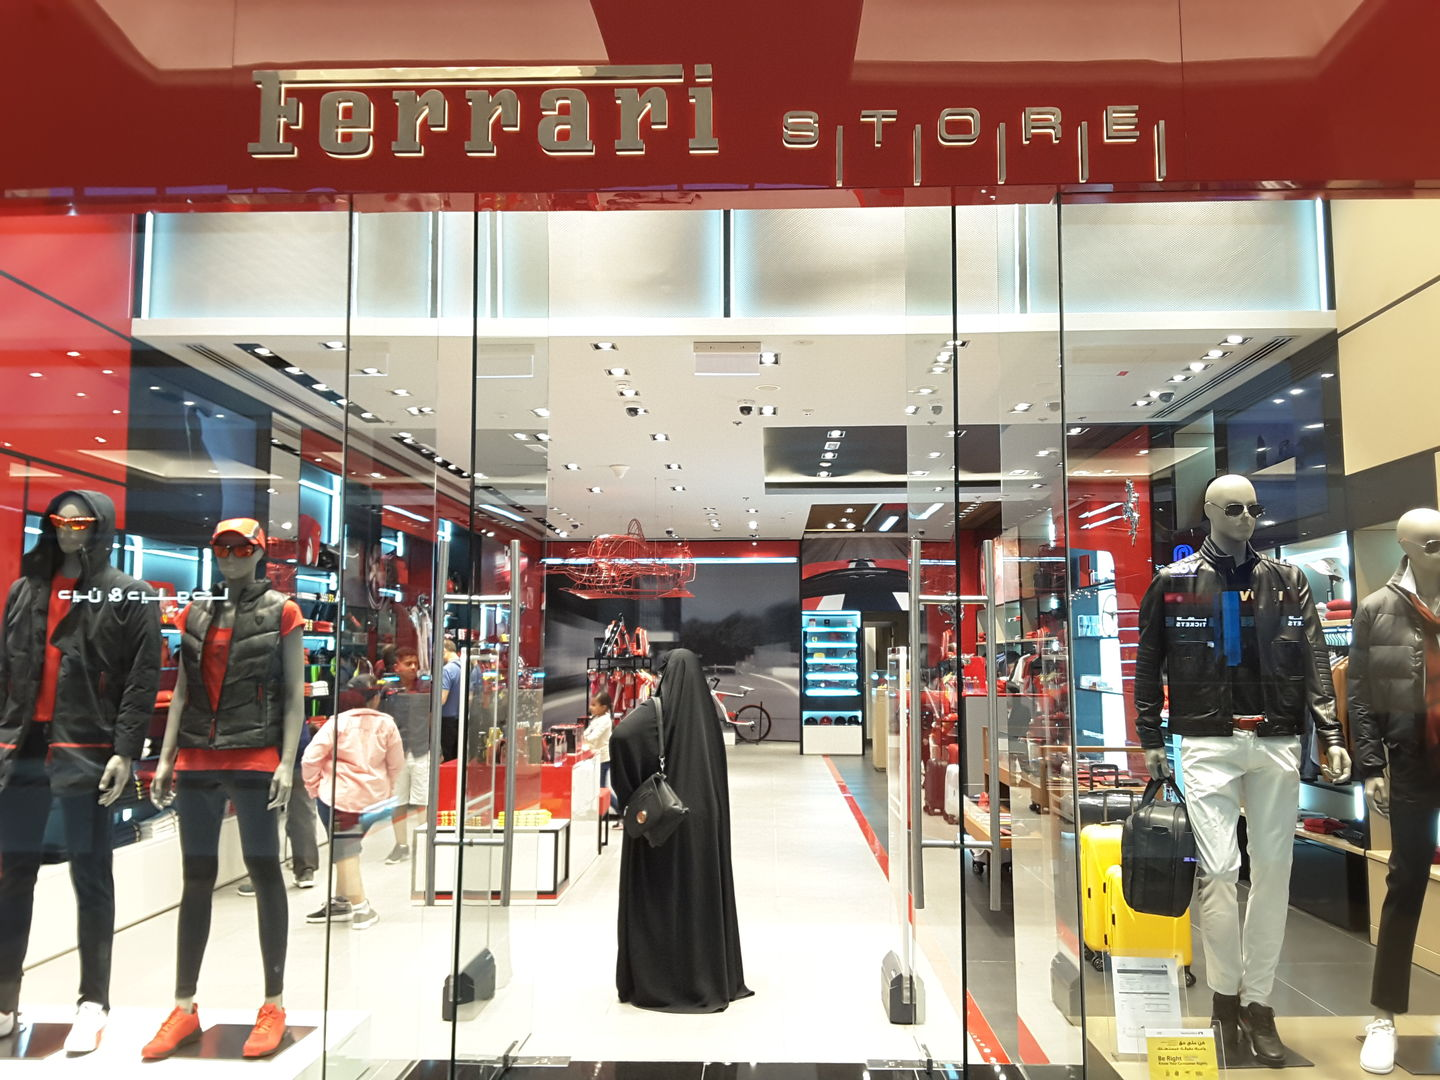 HiDubai-business-ferrari-store-shopping-fashion-accessories-al-barsha-1-dubai-2